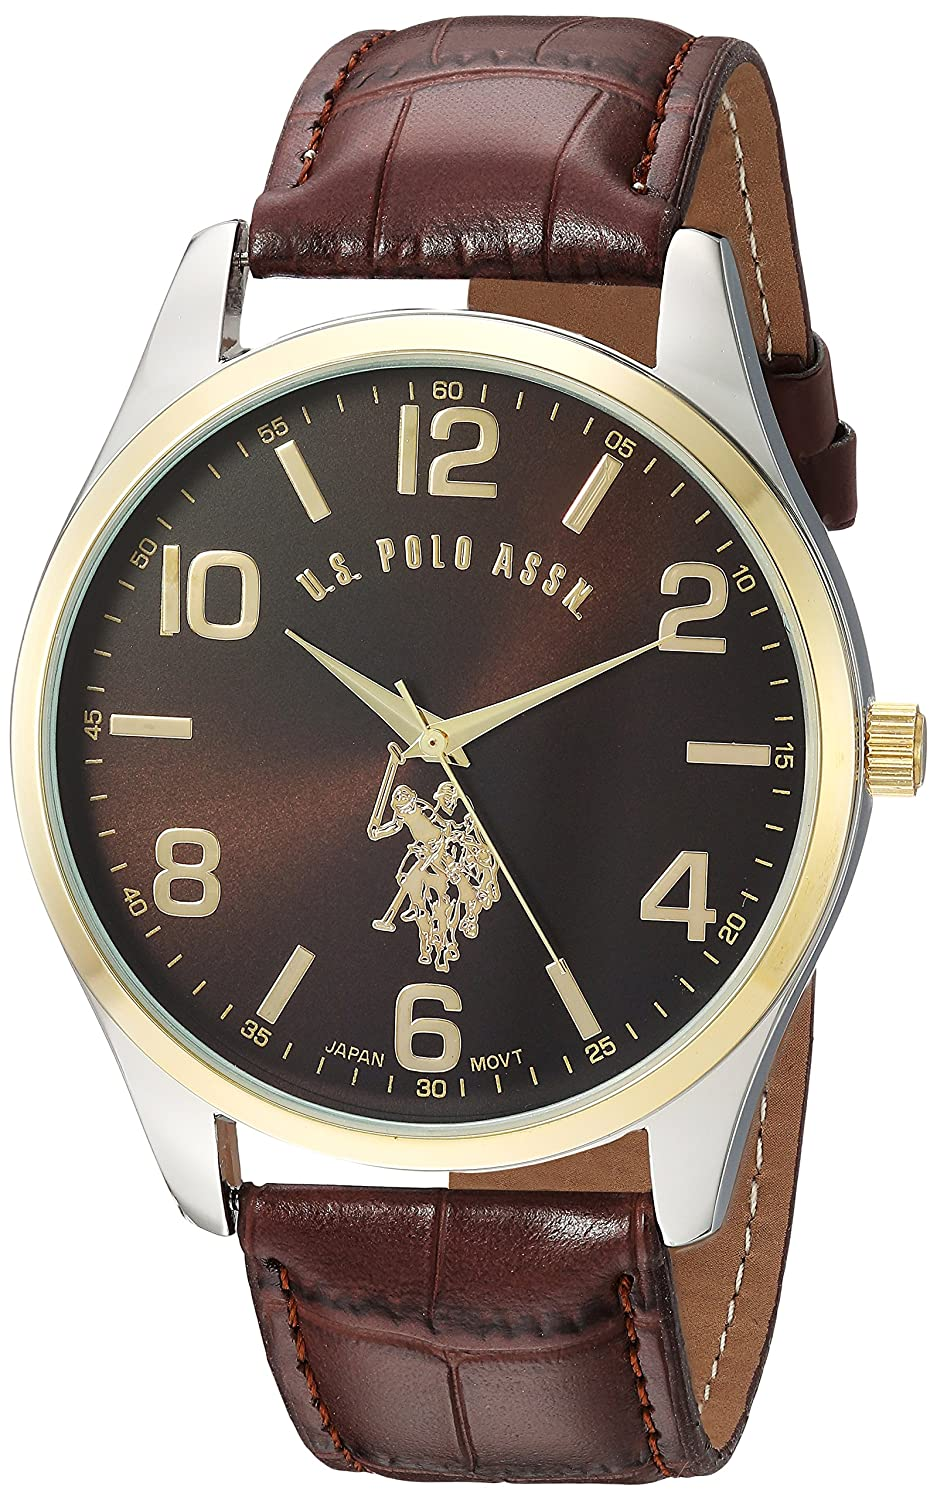 706fb3ca054 Amazon.com  U.S. Polo Assn. Classic Men s USC50225 Watch with Brown  Faux-Leather Strap  Watches